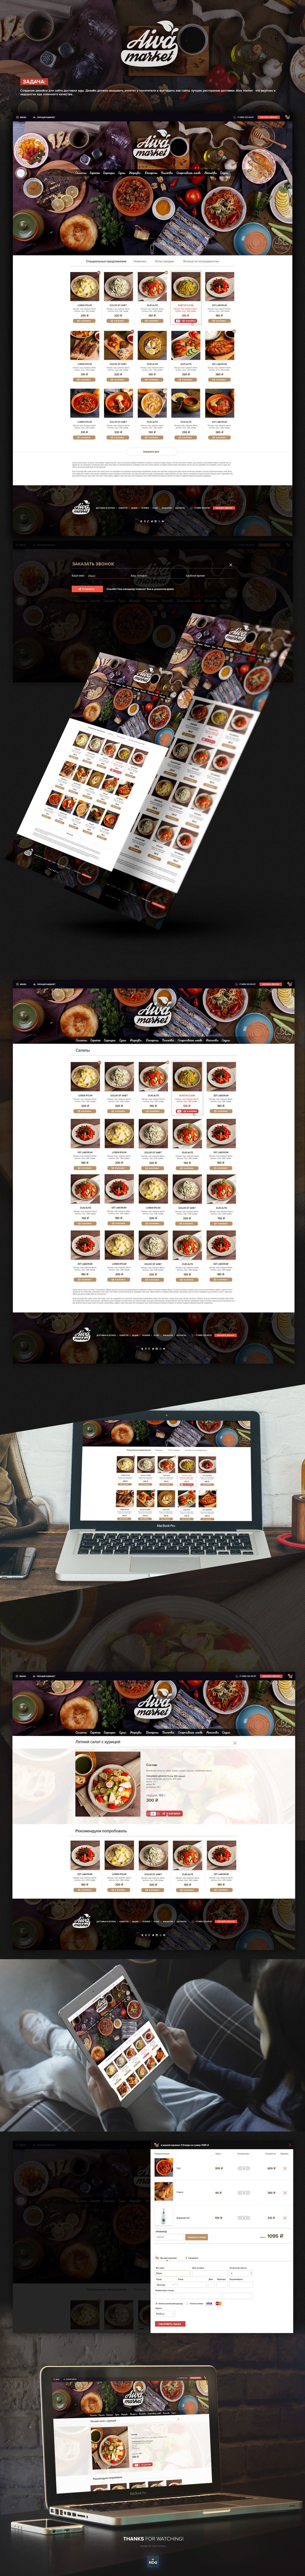 Aiva market - catering shop design on Behance